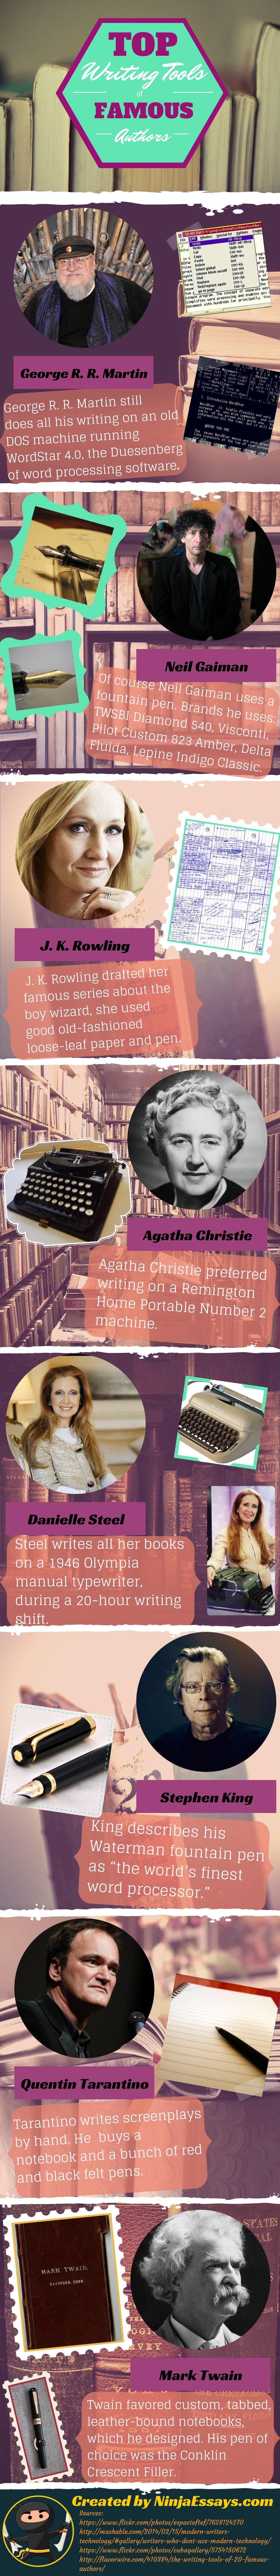 The Writing Tools Of Famous Authors